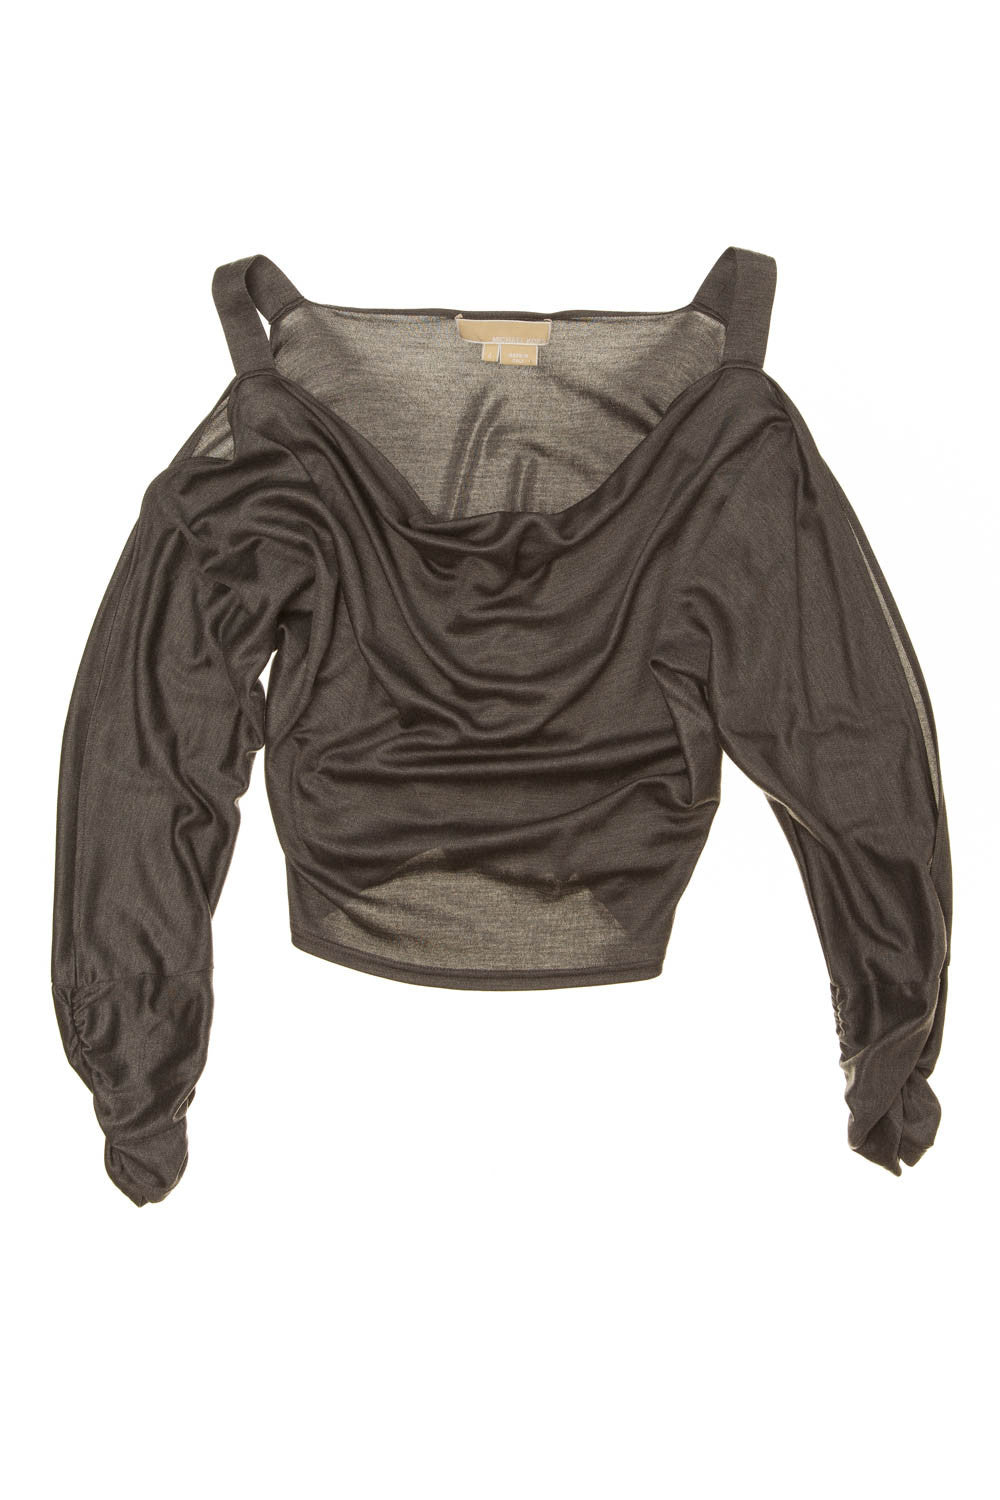 Michael Kors - Dark Grey Top - US4 - $125